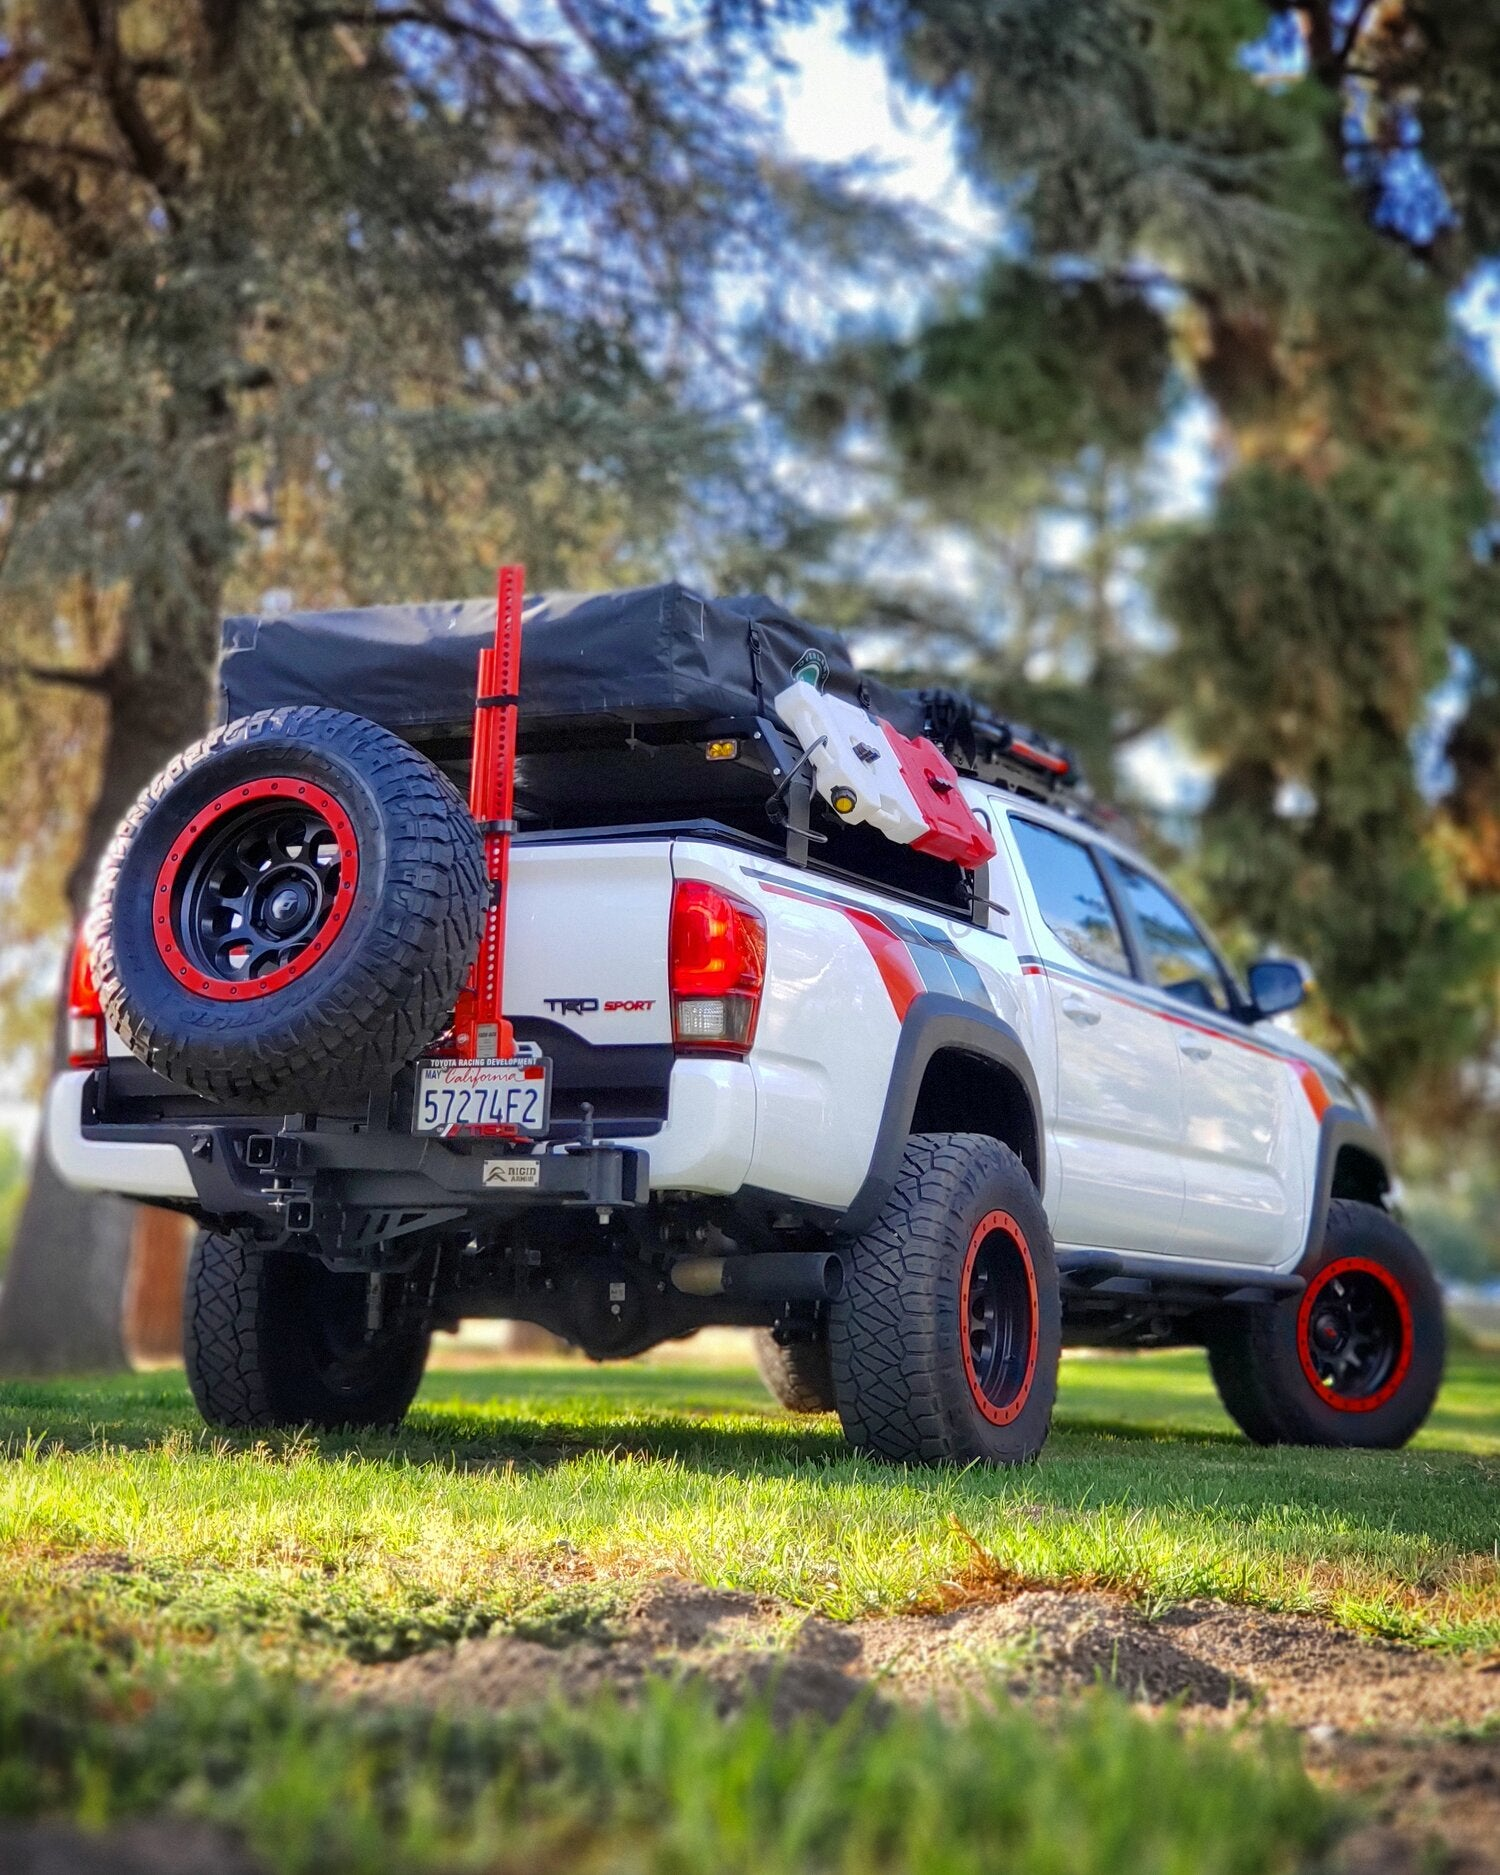 Rigid Armor - Hybrid Swing Out - Toyota Tacoma 2005-2020 - 4x4 Runners